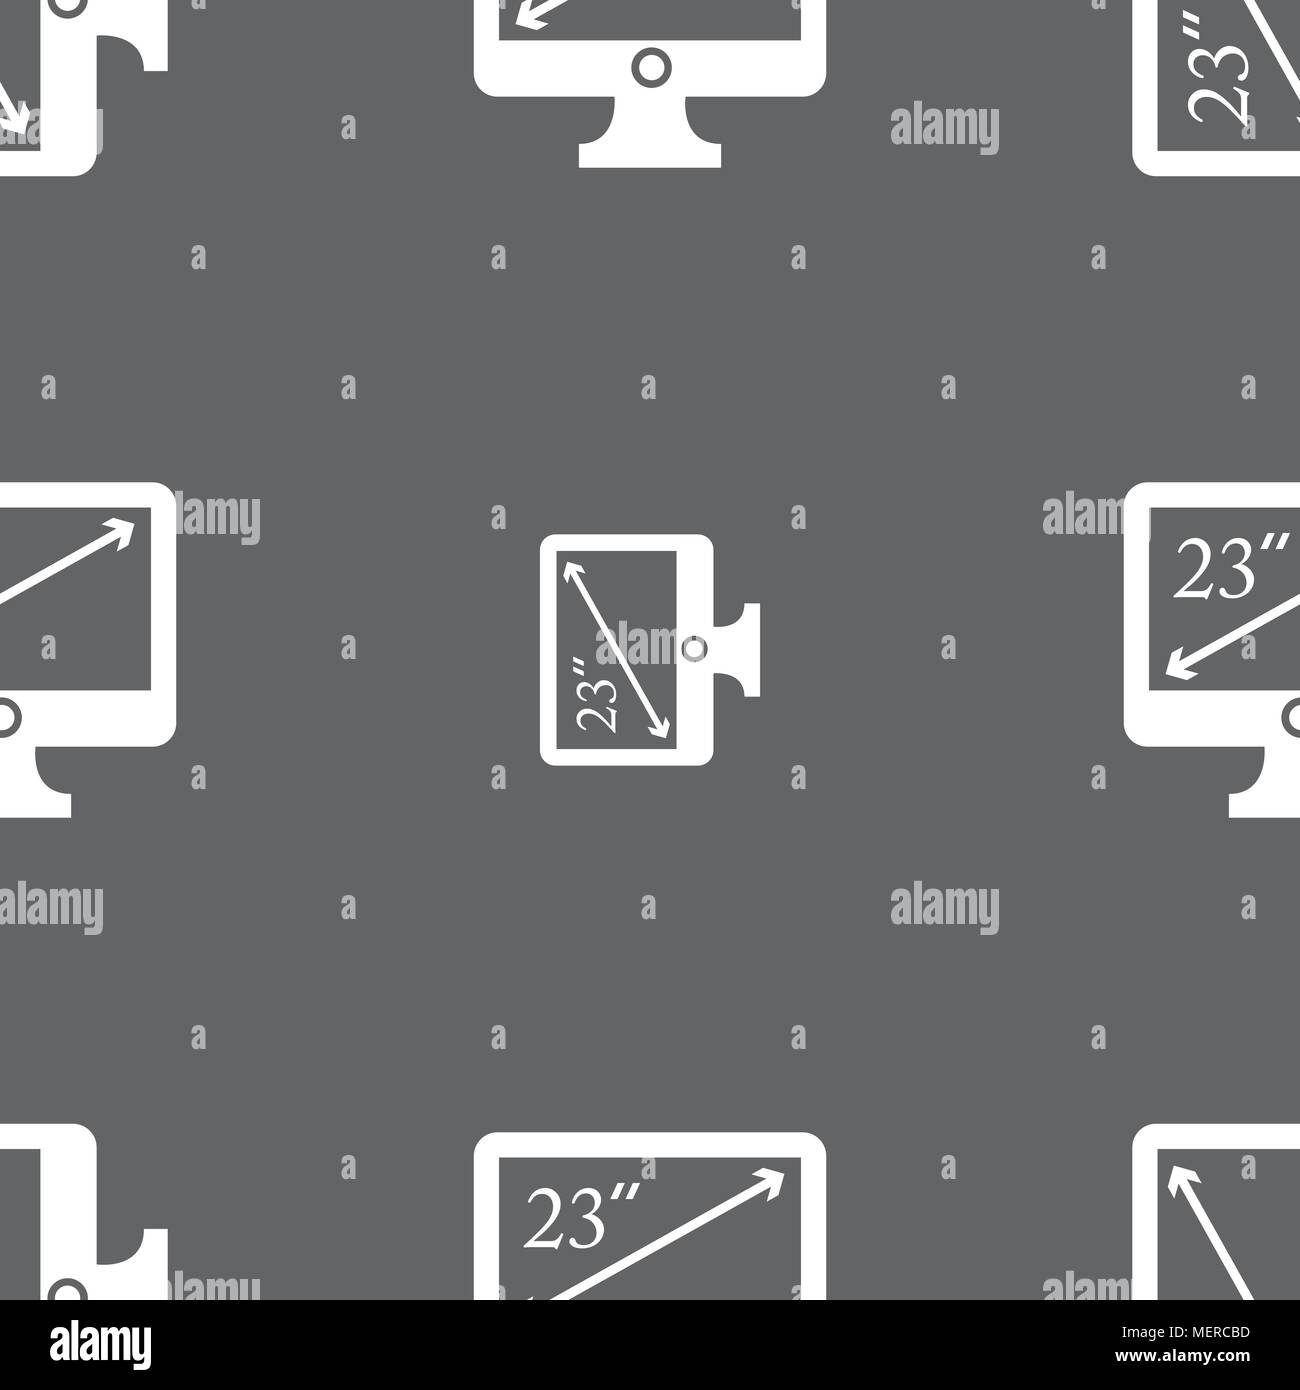 diagonal of the monitor 23 inches icon sign. Seamless pattern on a gray background. Vector illustration - Stock Vector